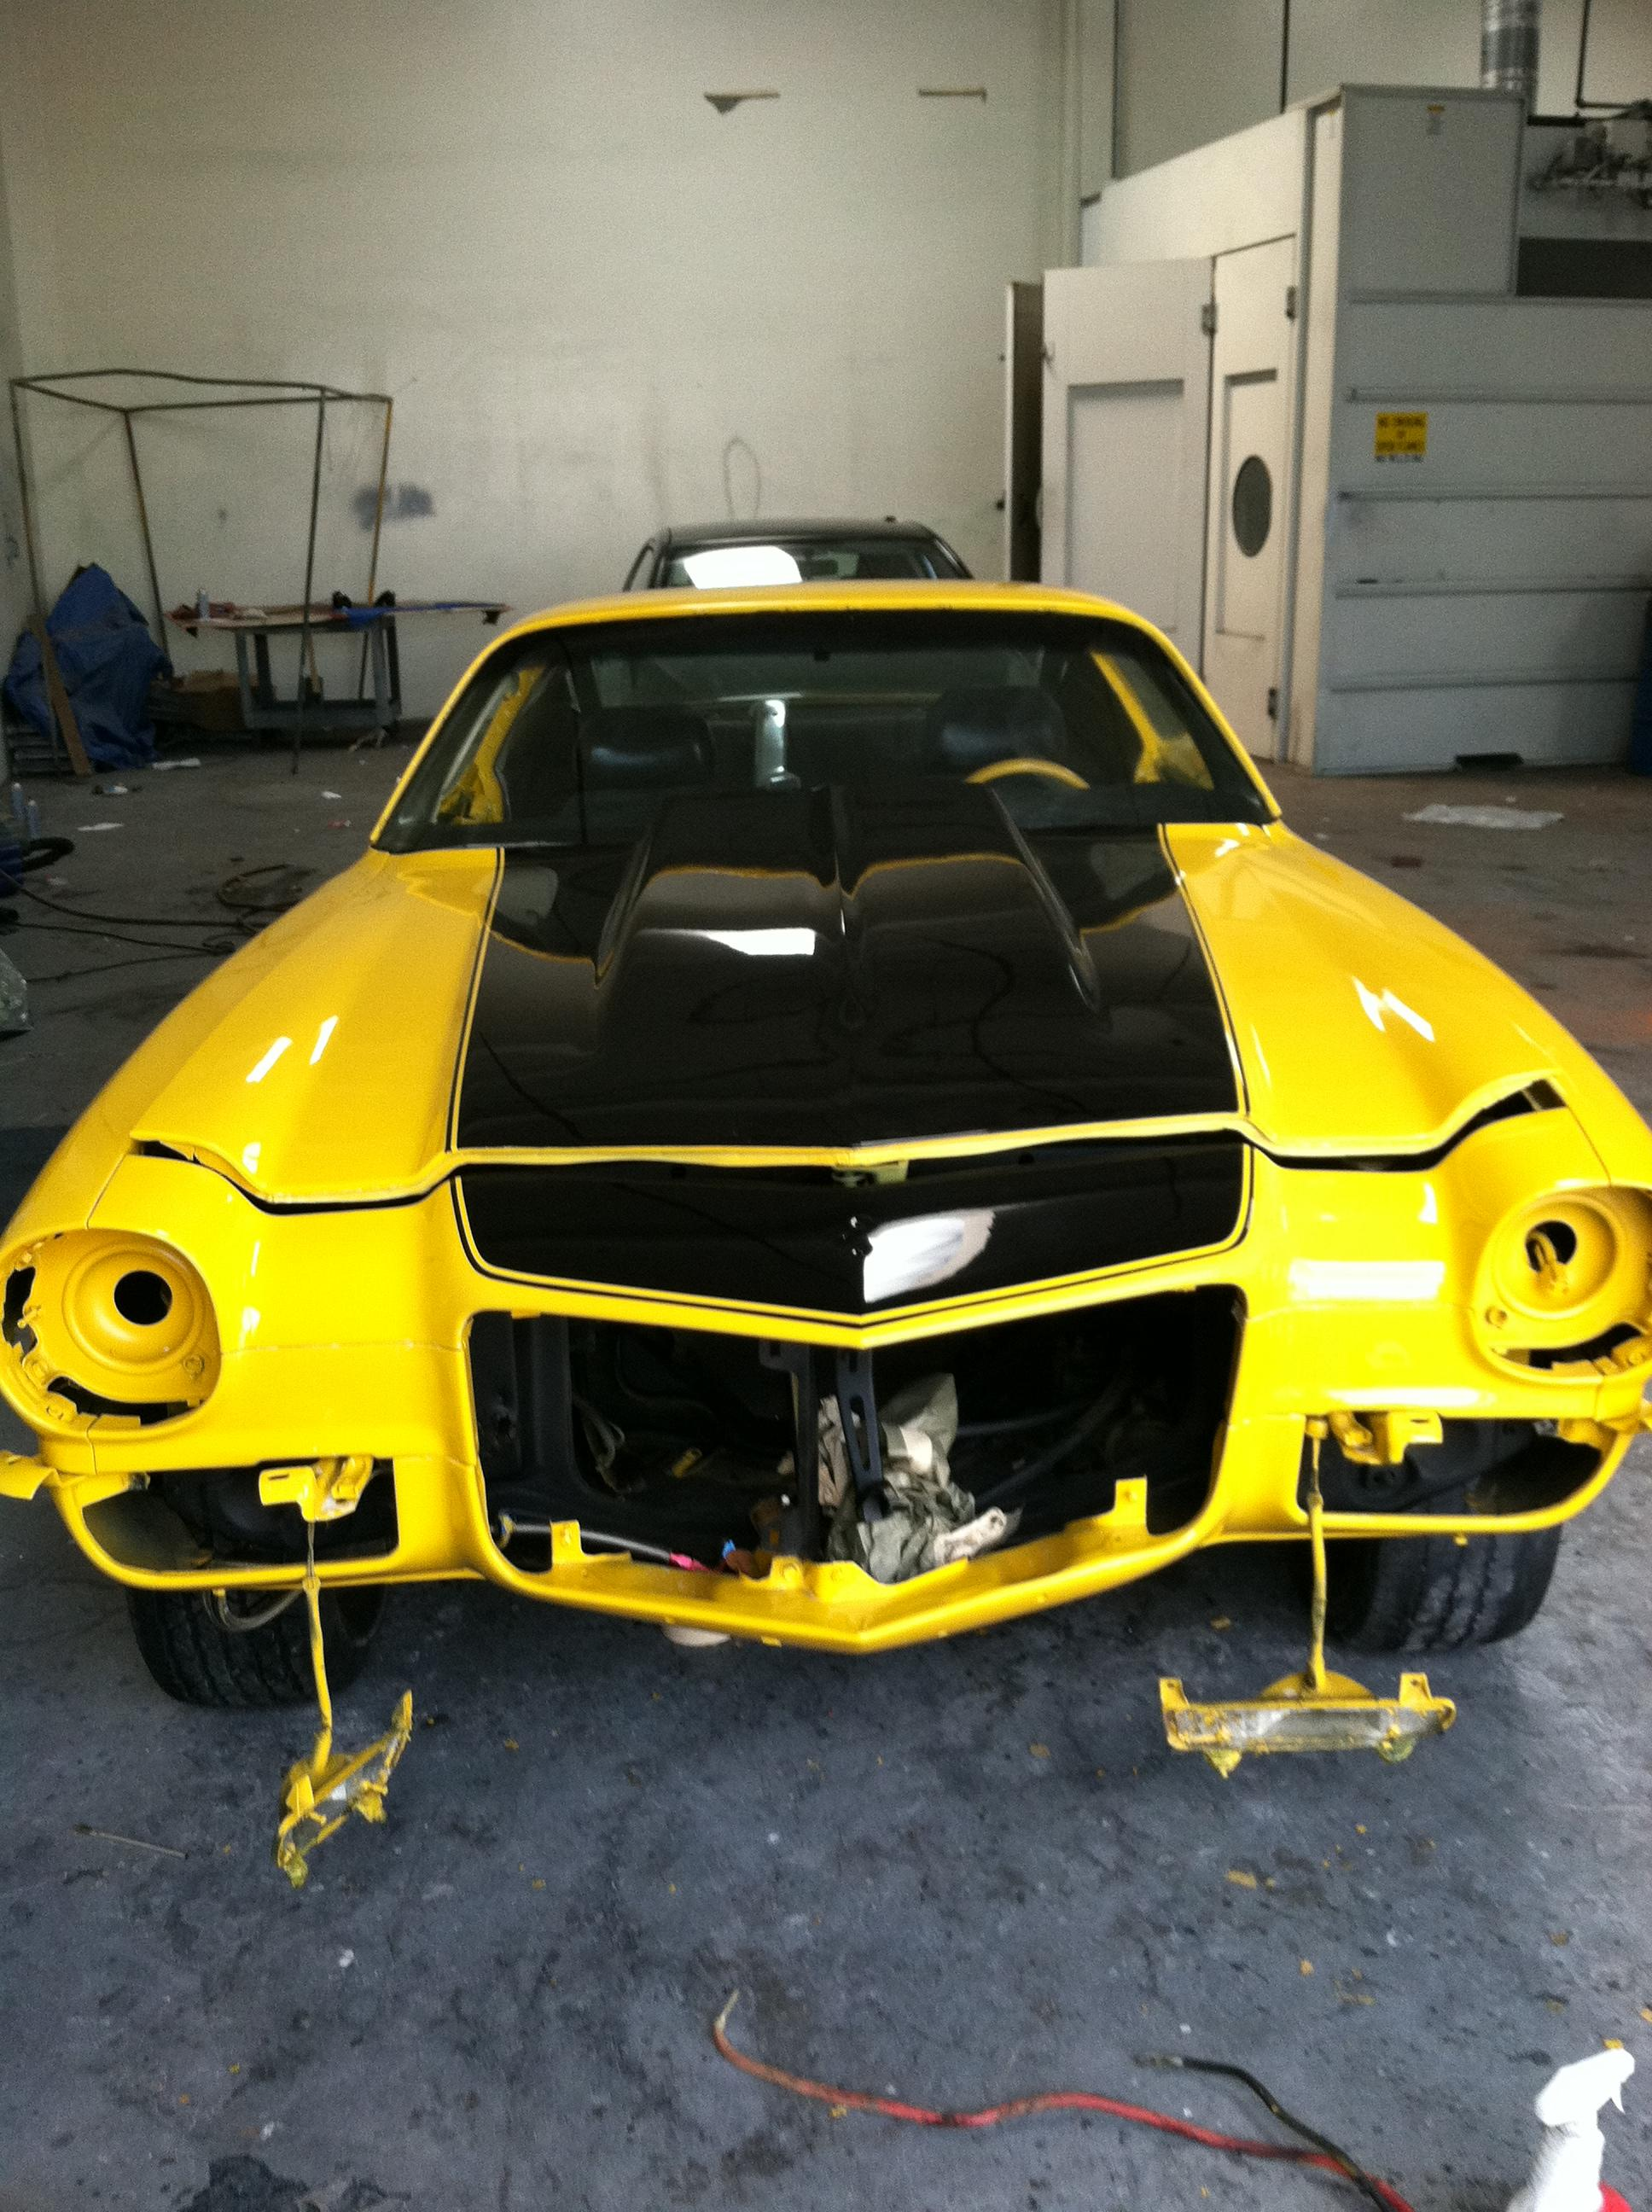 Maaco Collision Repair & Auto Painting In Hayward, CA